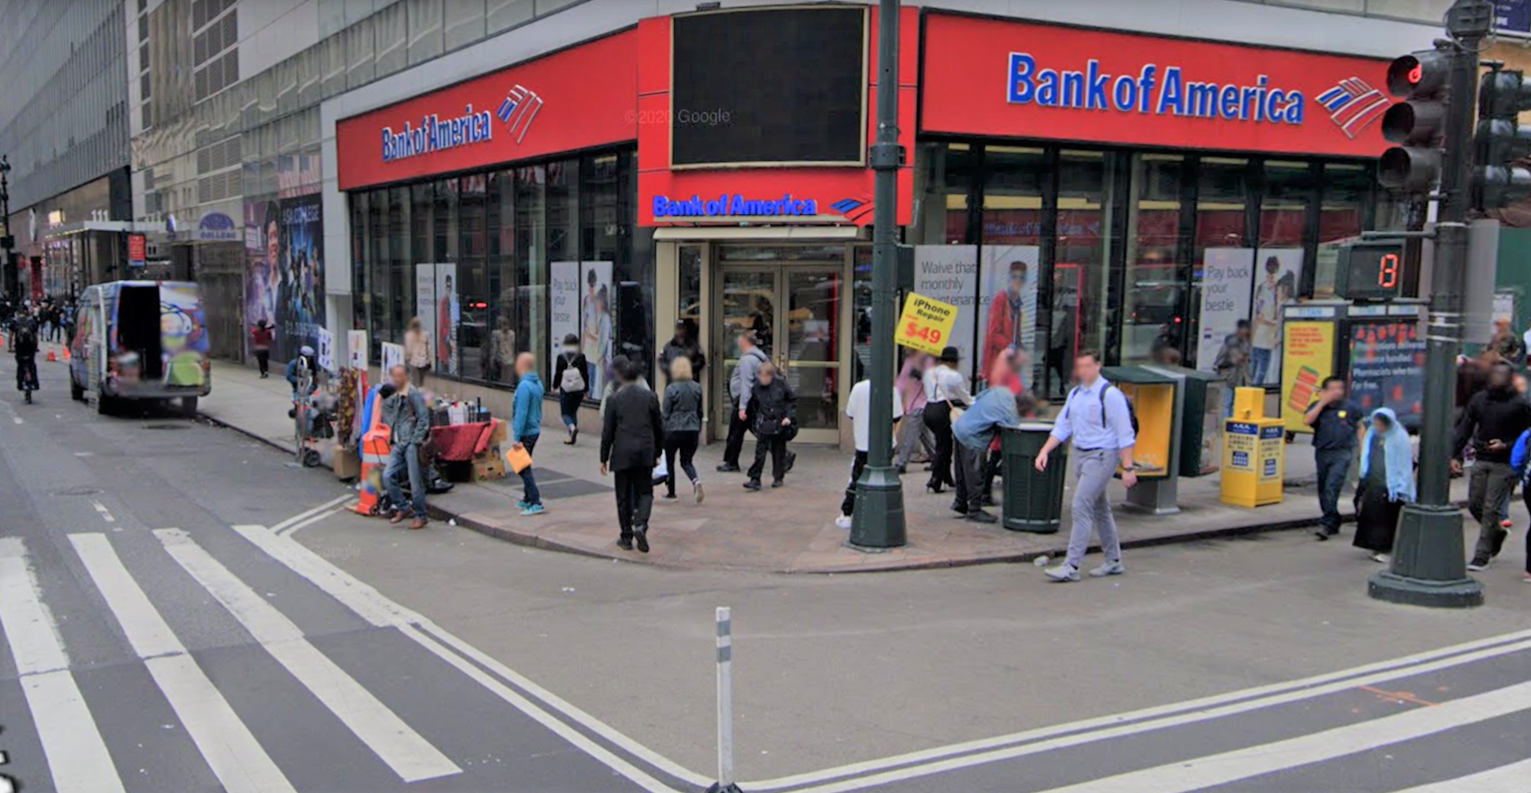 Bank of America financial center with walk-up ATM | 1293 Broadway, New York, NY 10001